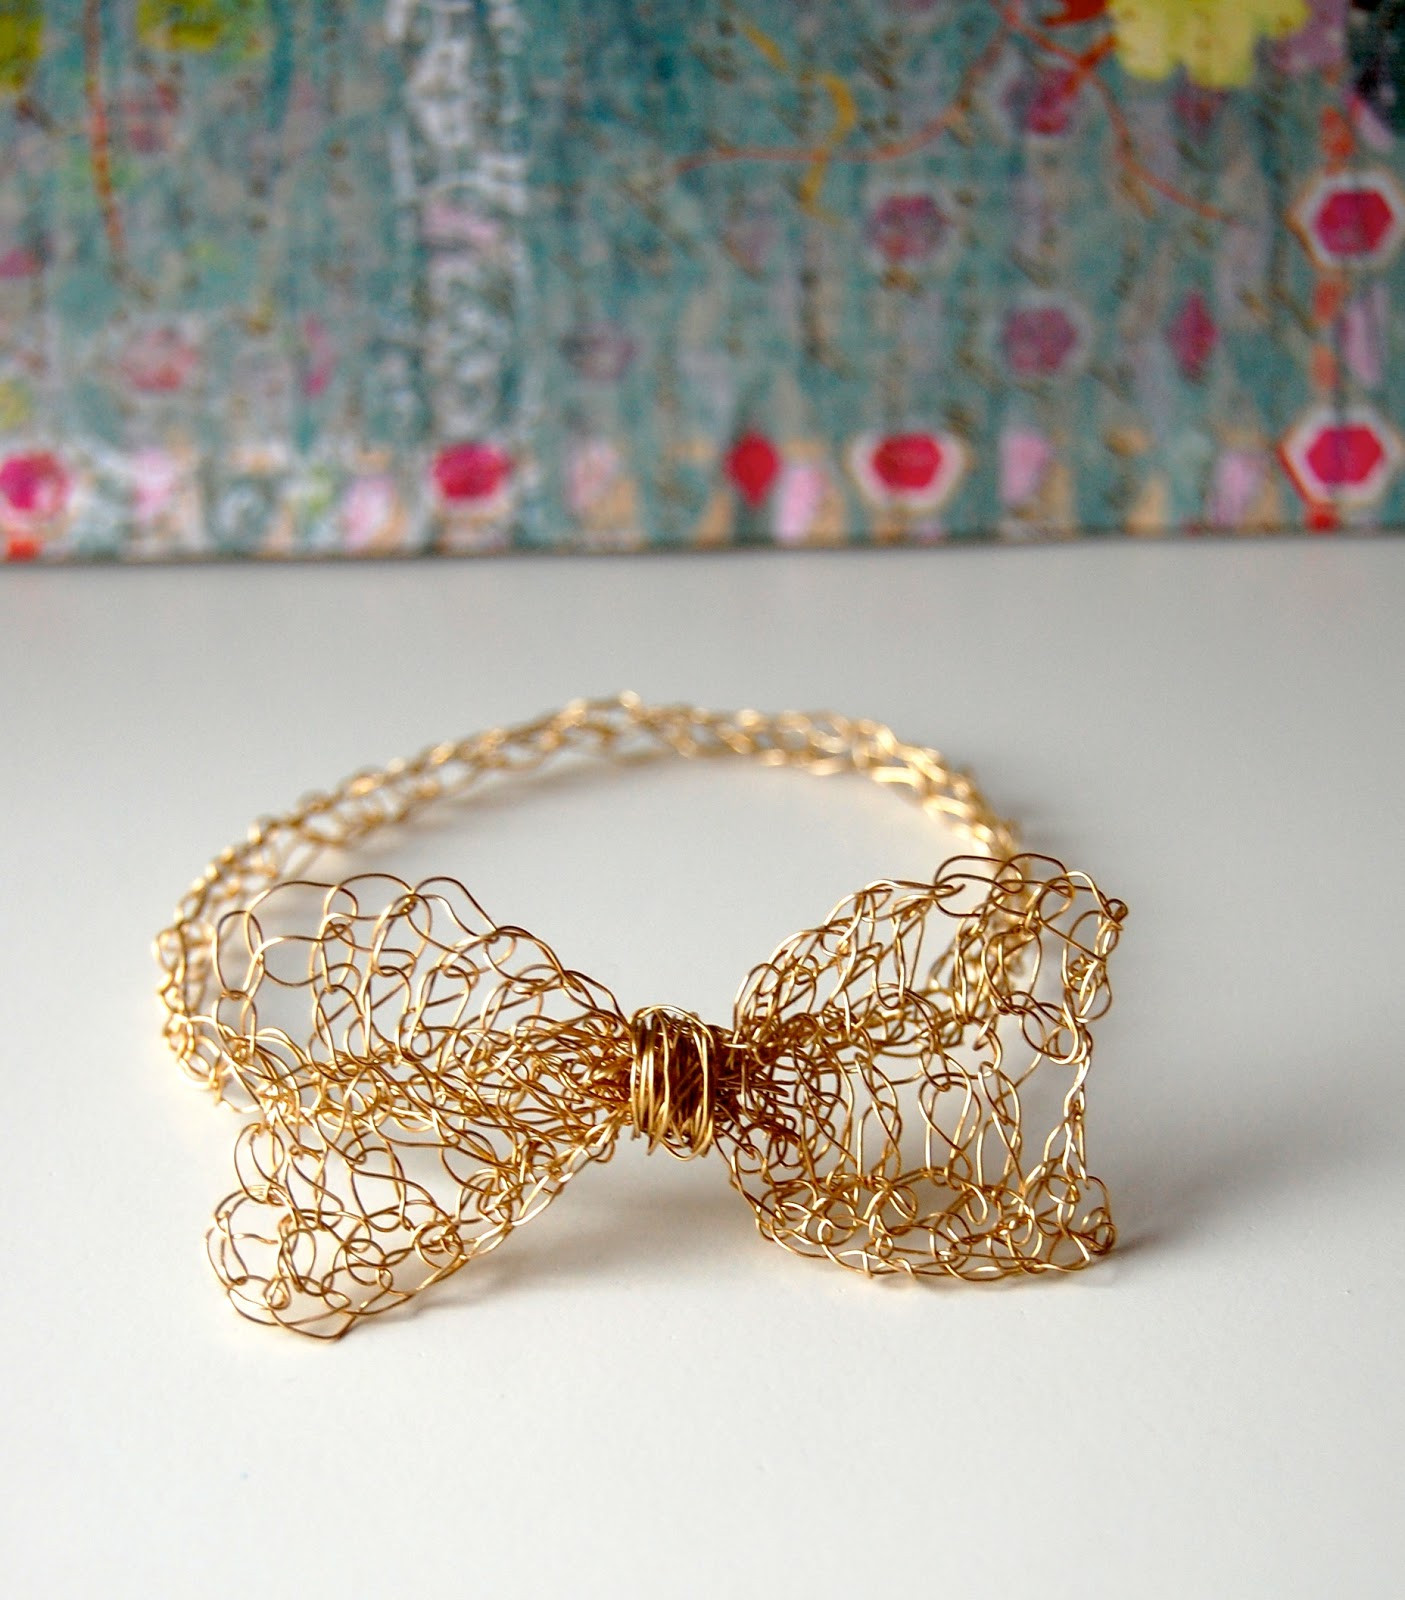 Crochet Bracelets Awesome Sellzcutethings Easy Gold Crochet Bow Bracelet Of Innovative 40 Images Crochet Bracelets